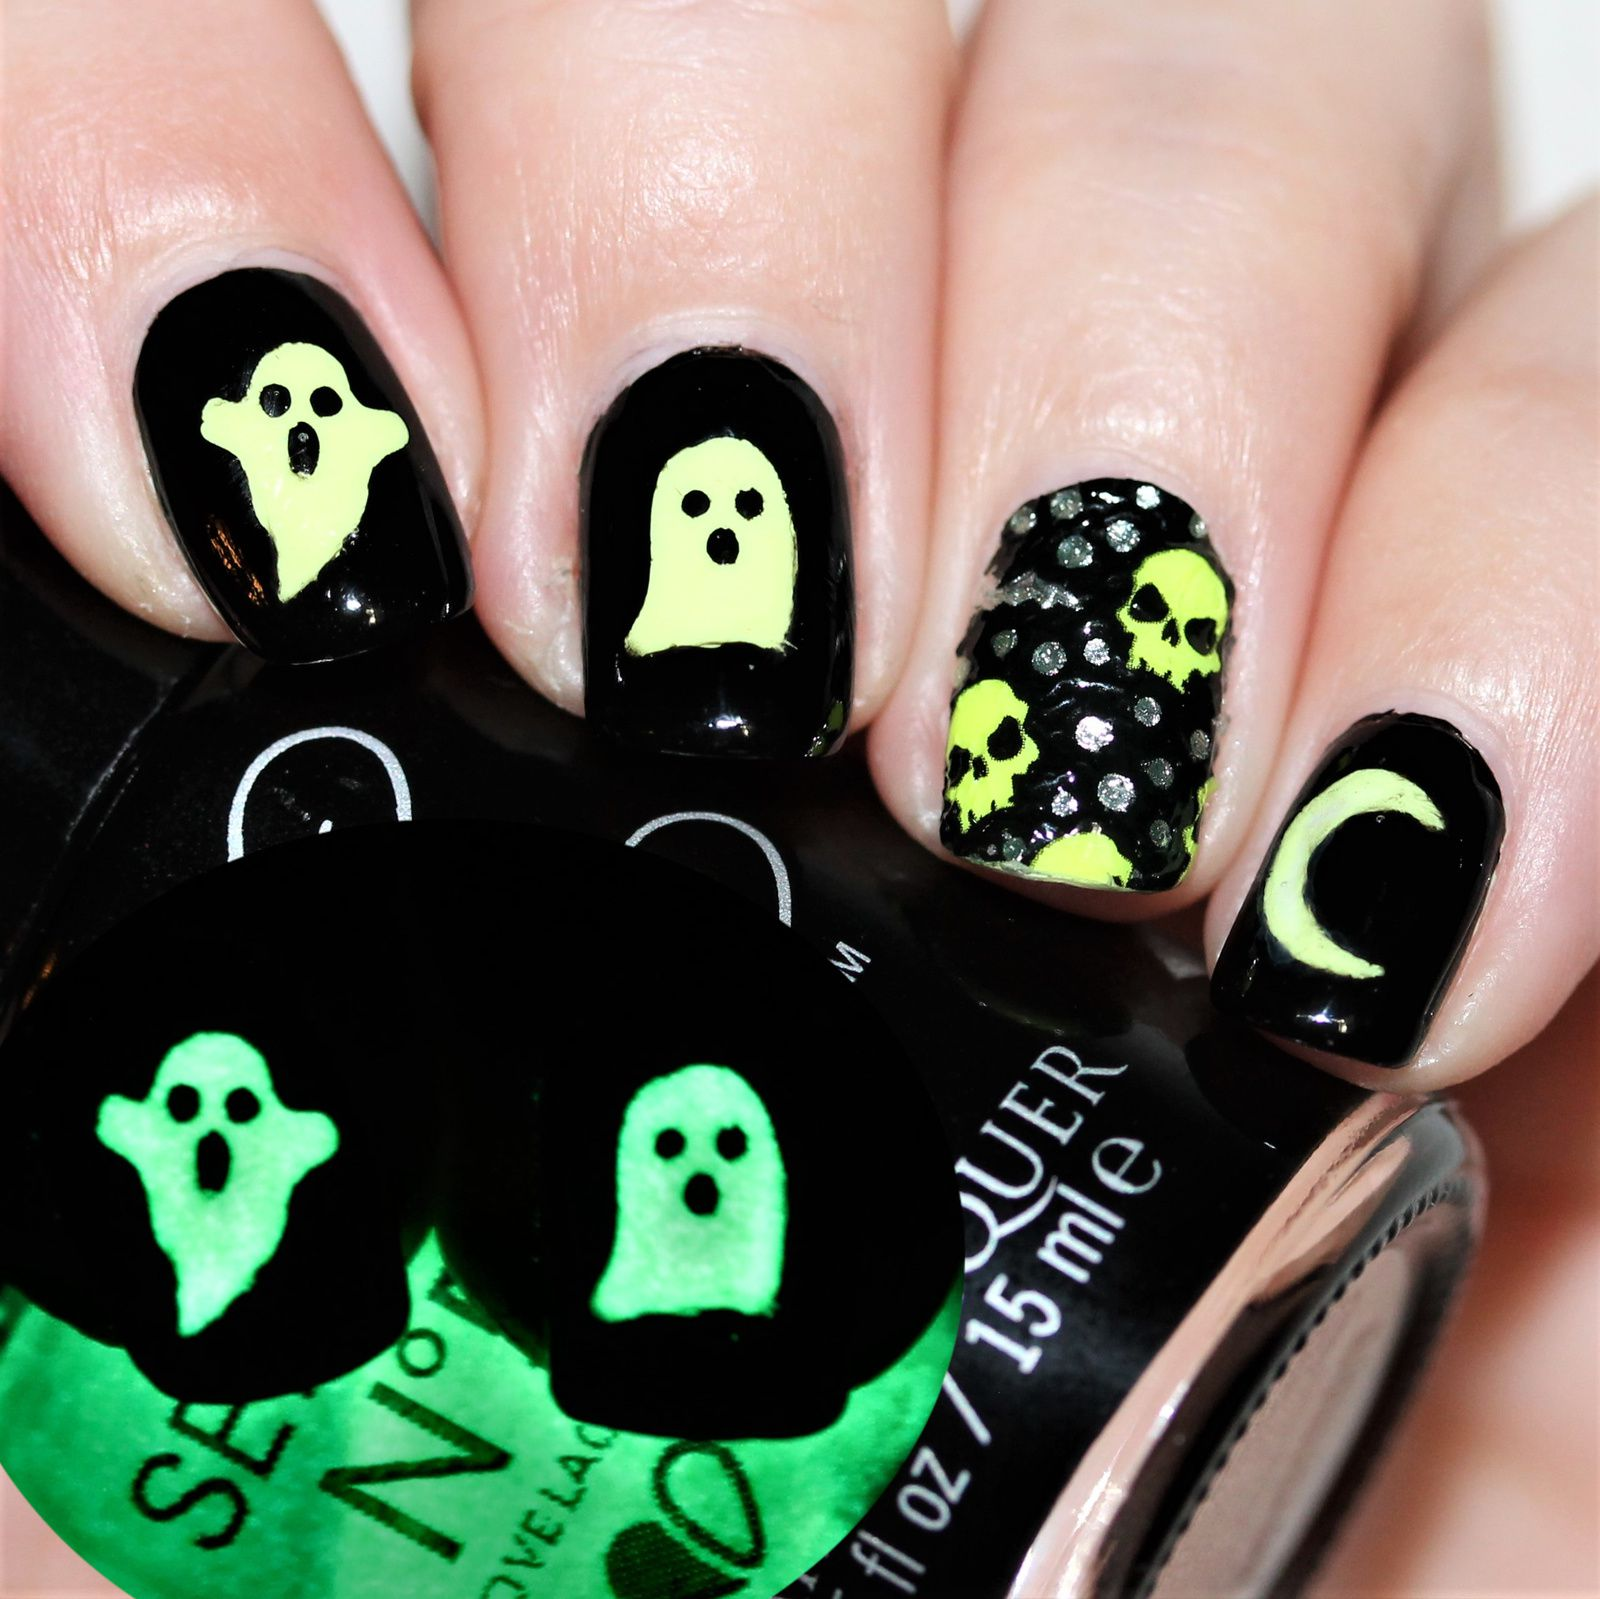 Essie Protein Base Coat / Serum No.5 Day Glow / Snail Vinyls Ghosts / Cult Nails Nevermore / Kiss Nails Dress Bats and Skulls Nail Wraps / Poshe Top Coat